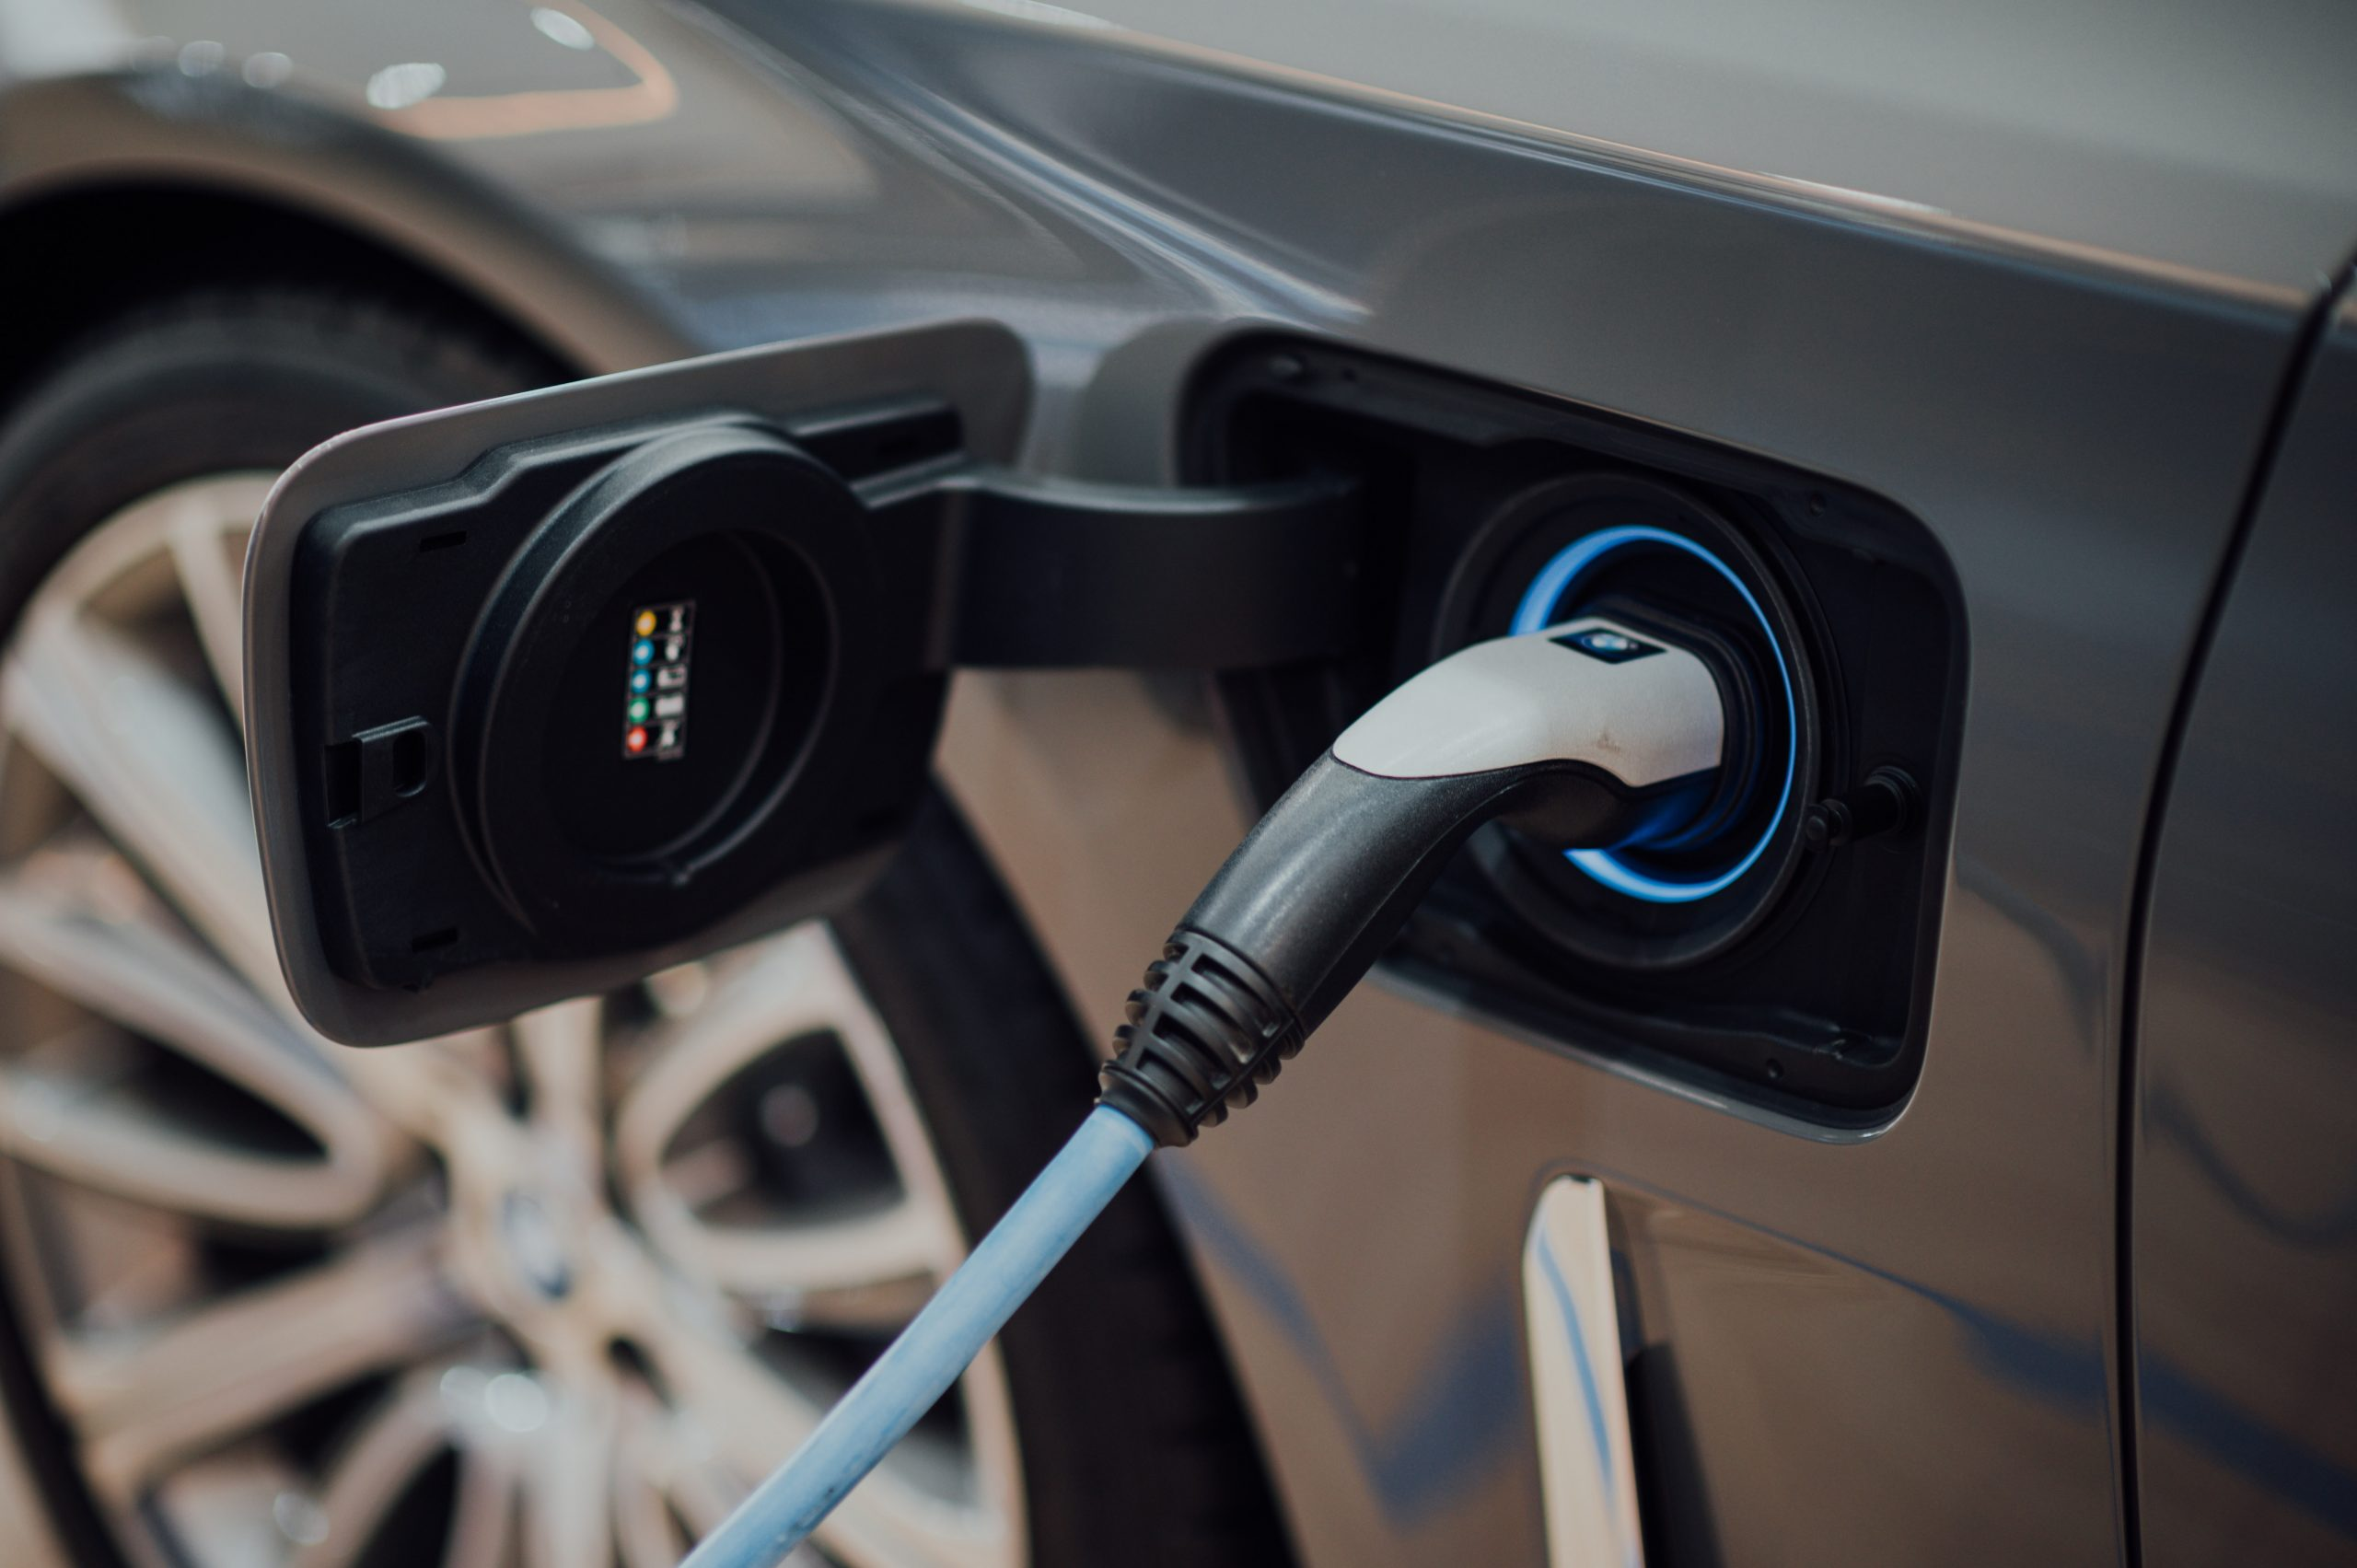 Charging of a plug-in hybrid electric vehicle